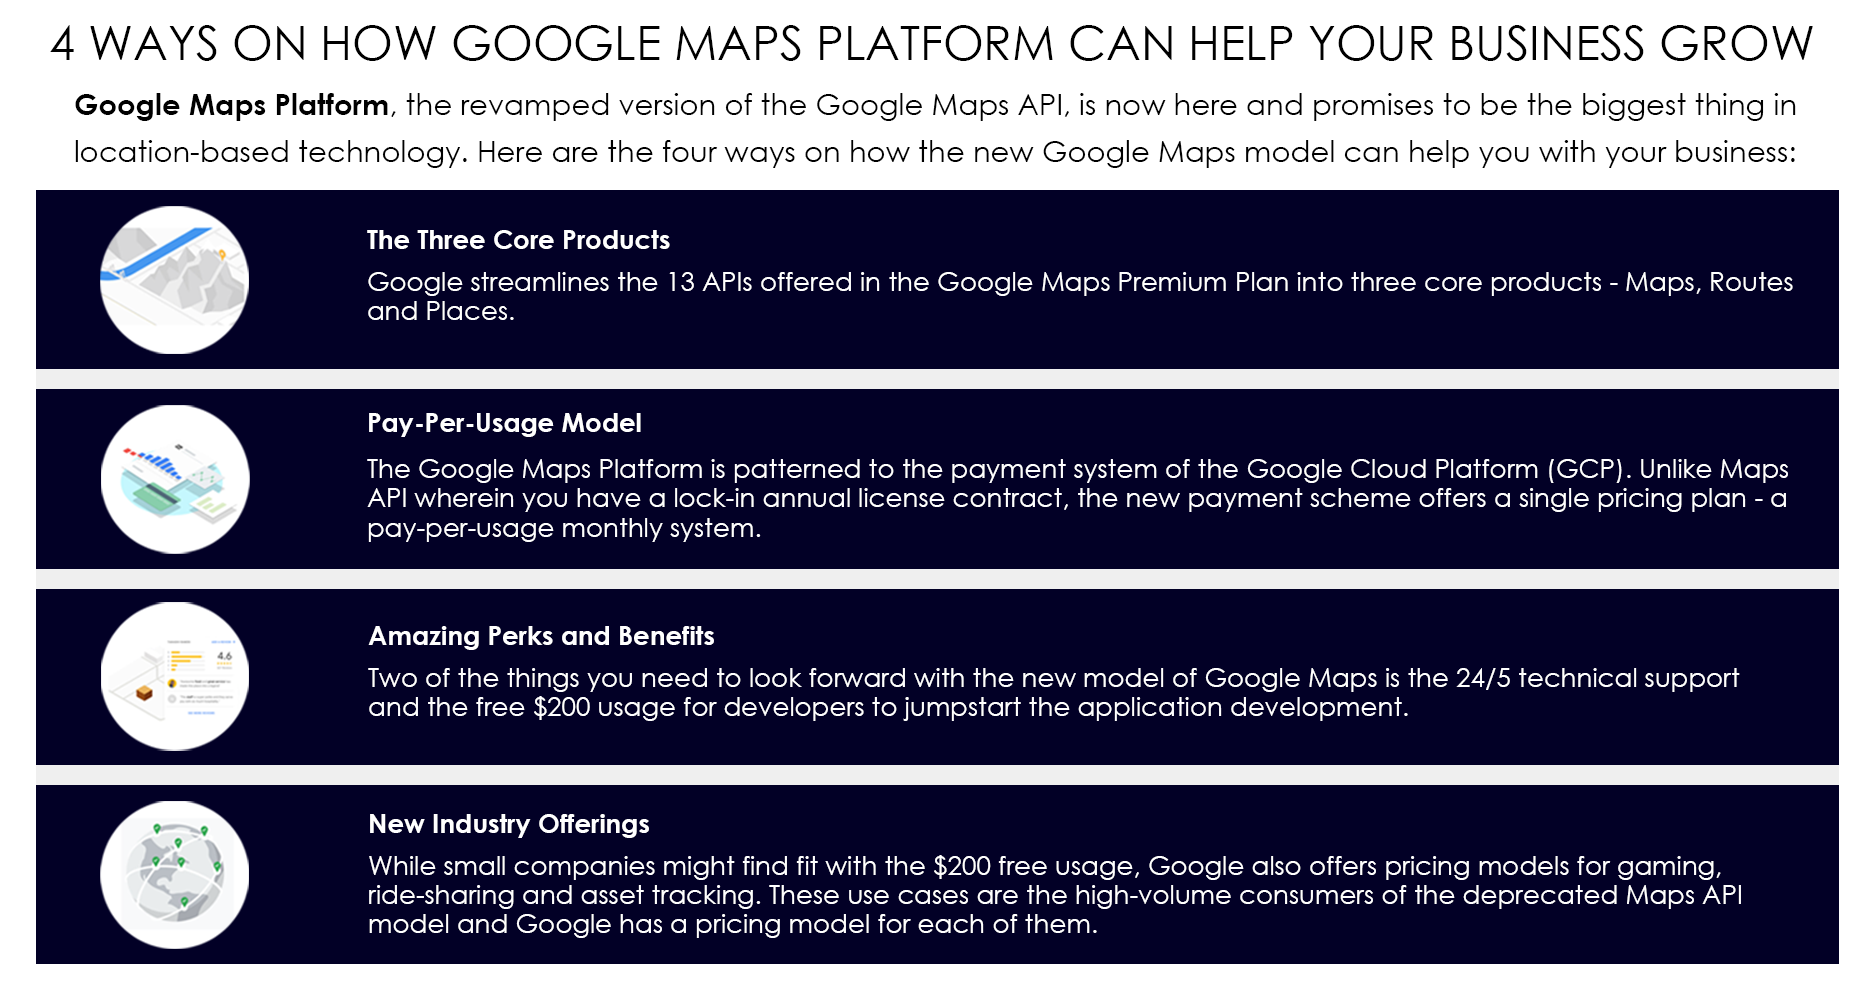 Here Are The Four Ways On How New Google Maps Model Can Help You With Your Business